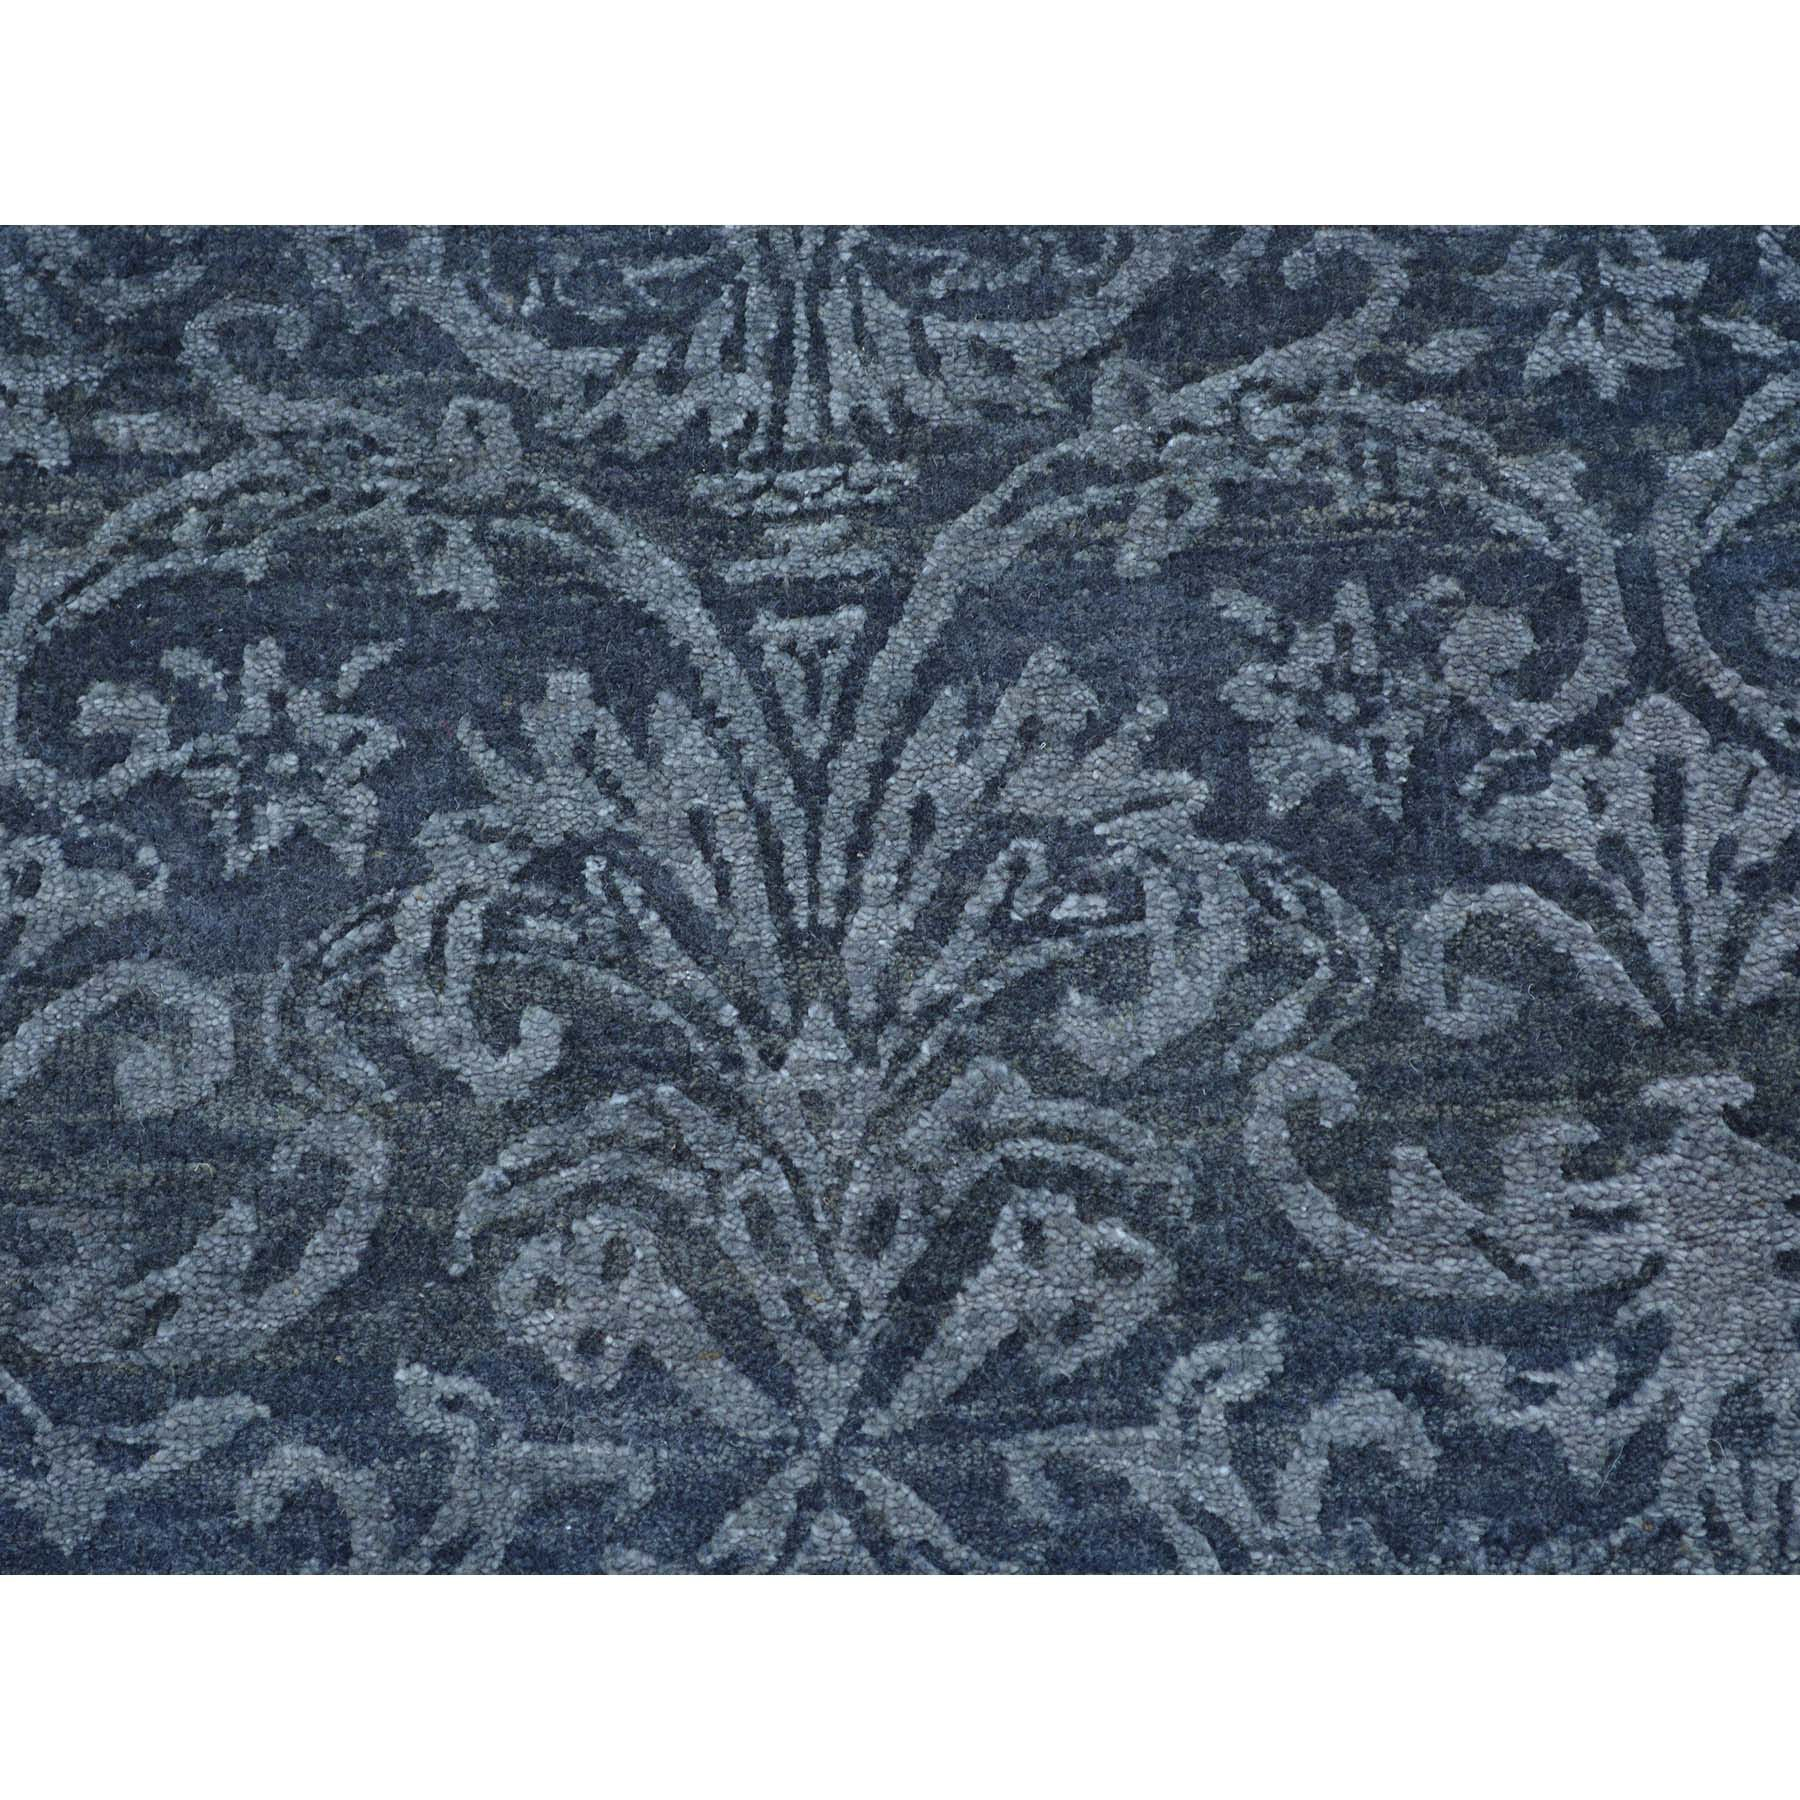 "Handmade Modern and Contemporary Runner Rug > Design# SH27142 > Size: 2'-6"" x 14'-0"" [ONLINE ONLY]"